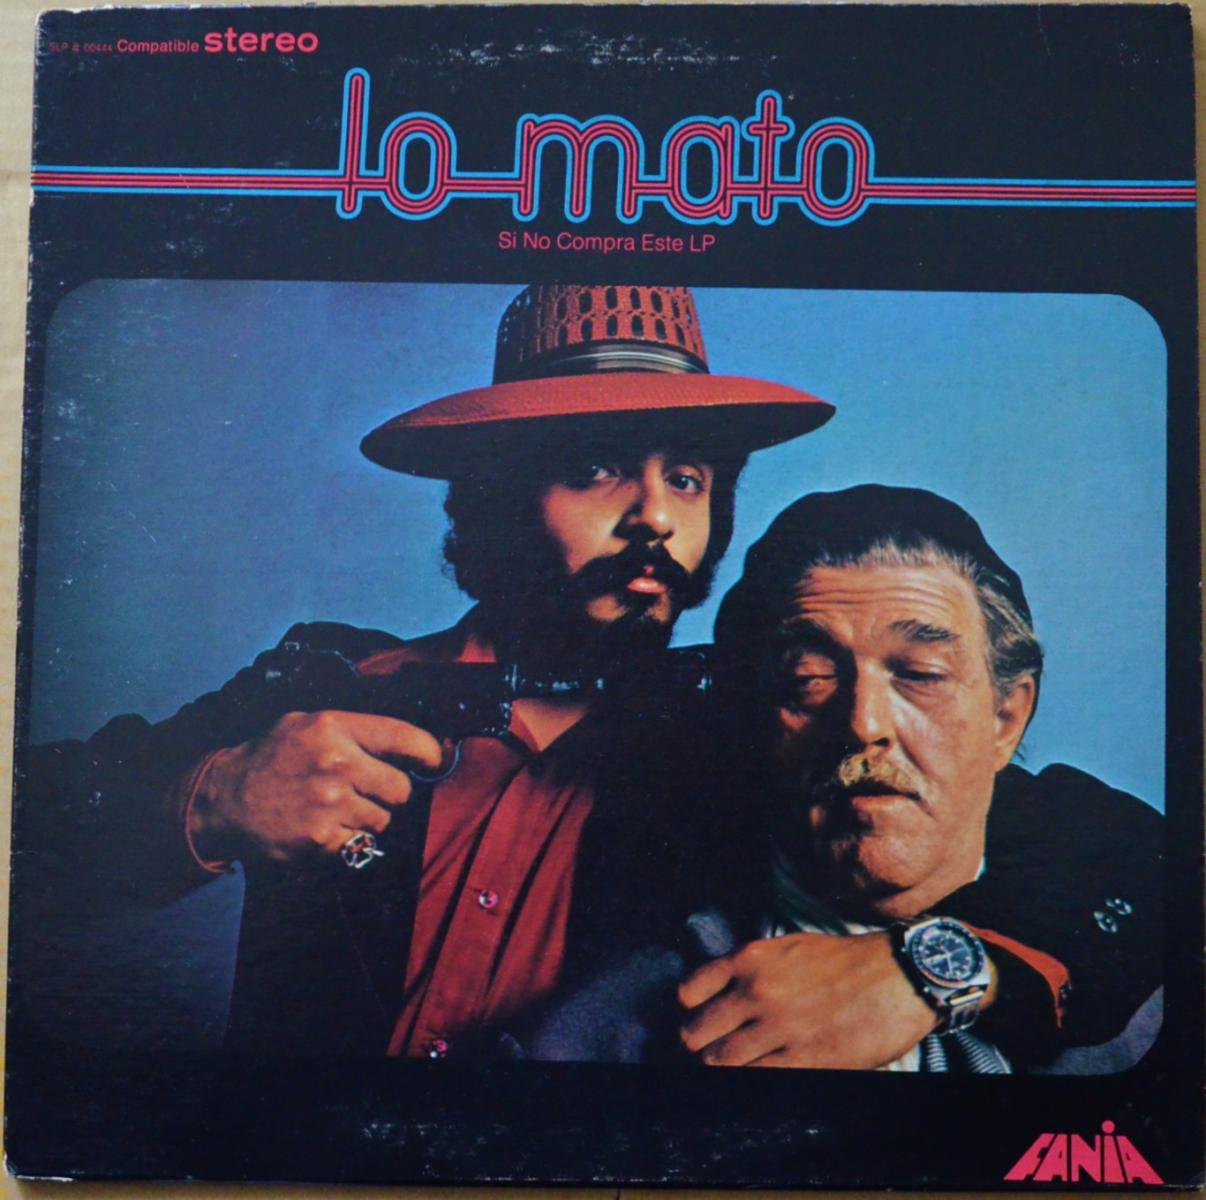 WILLIE COLON / LO MATO (LP)